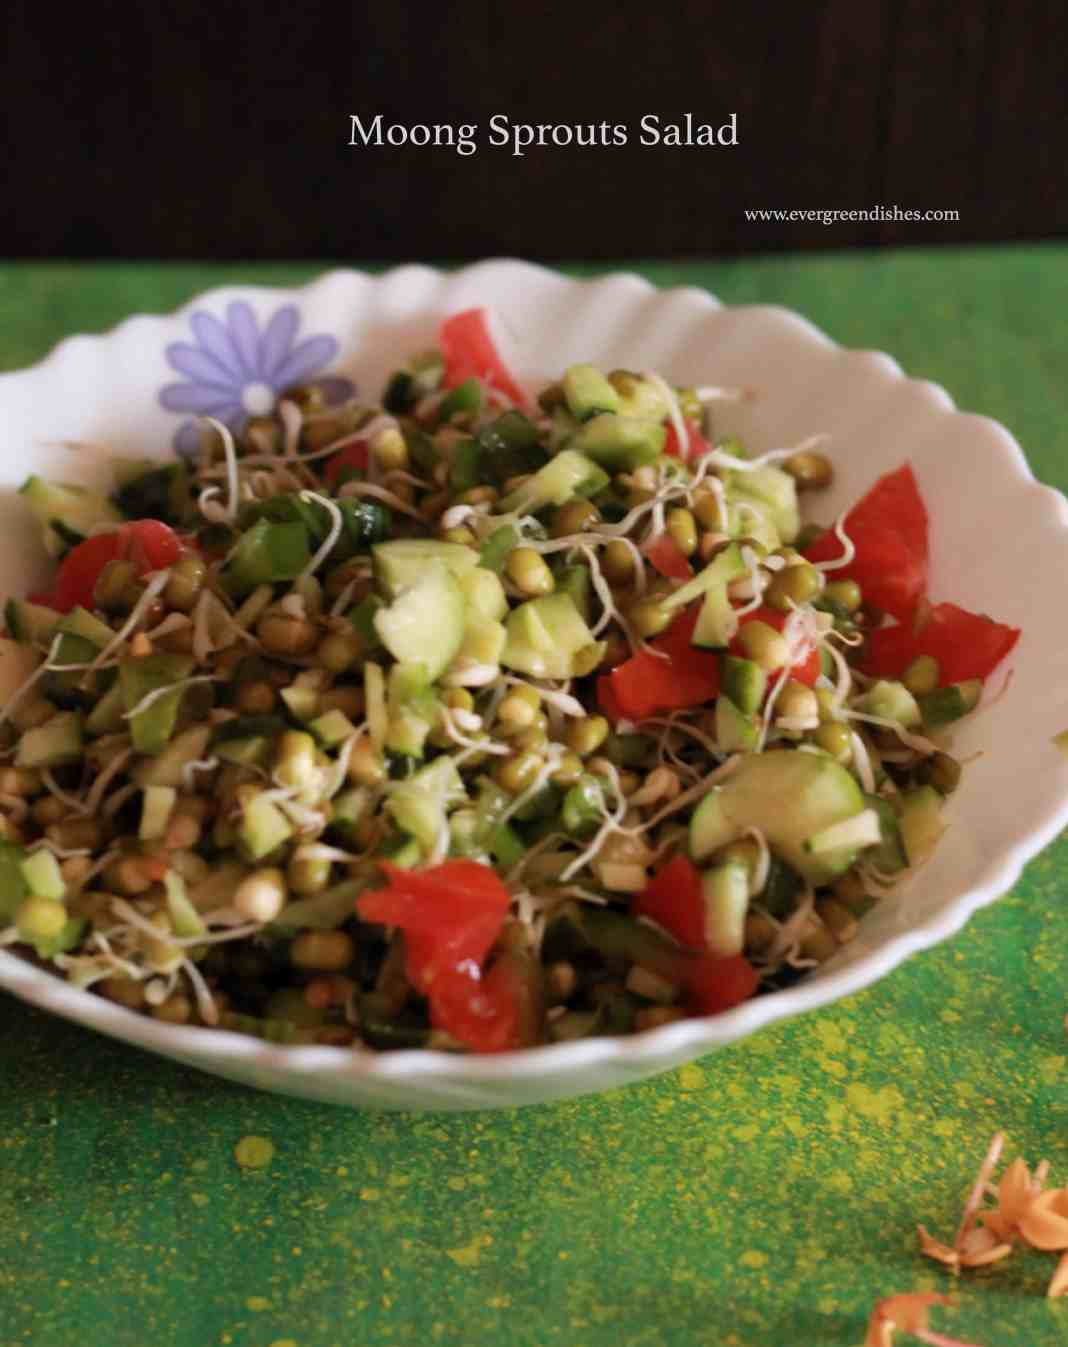 Sprouted Moong Salad